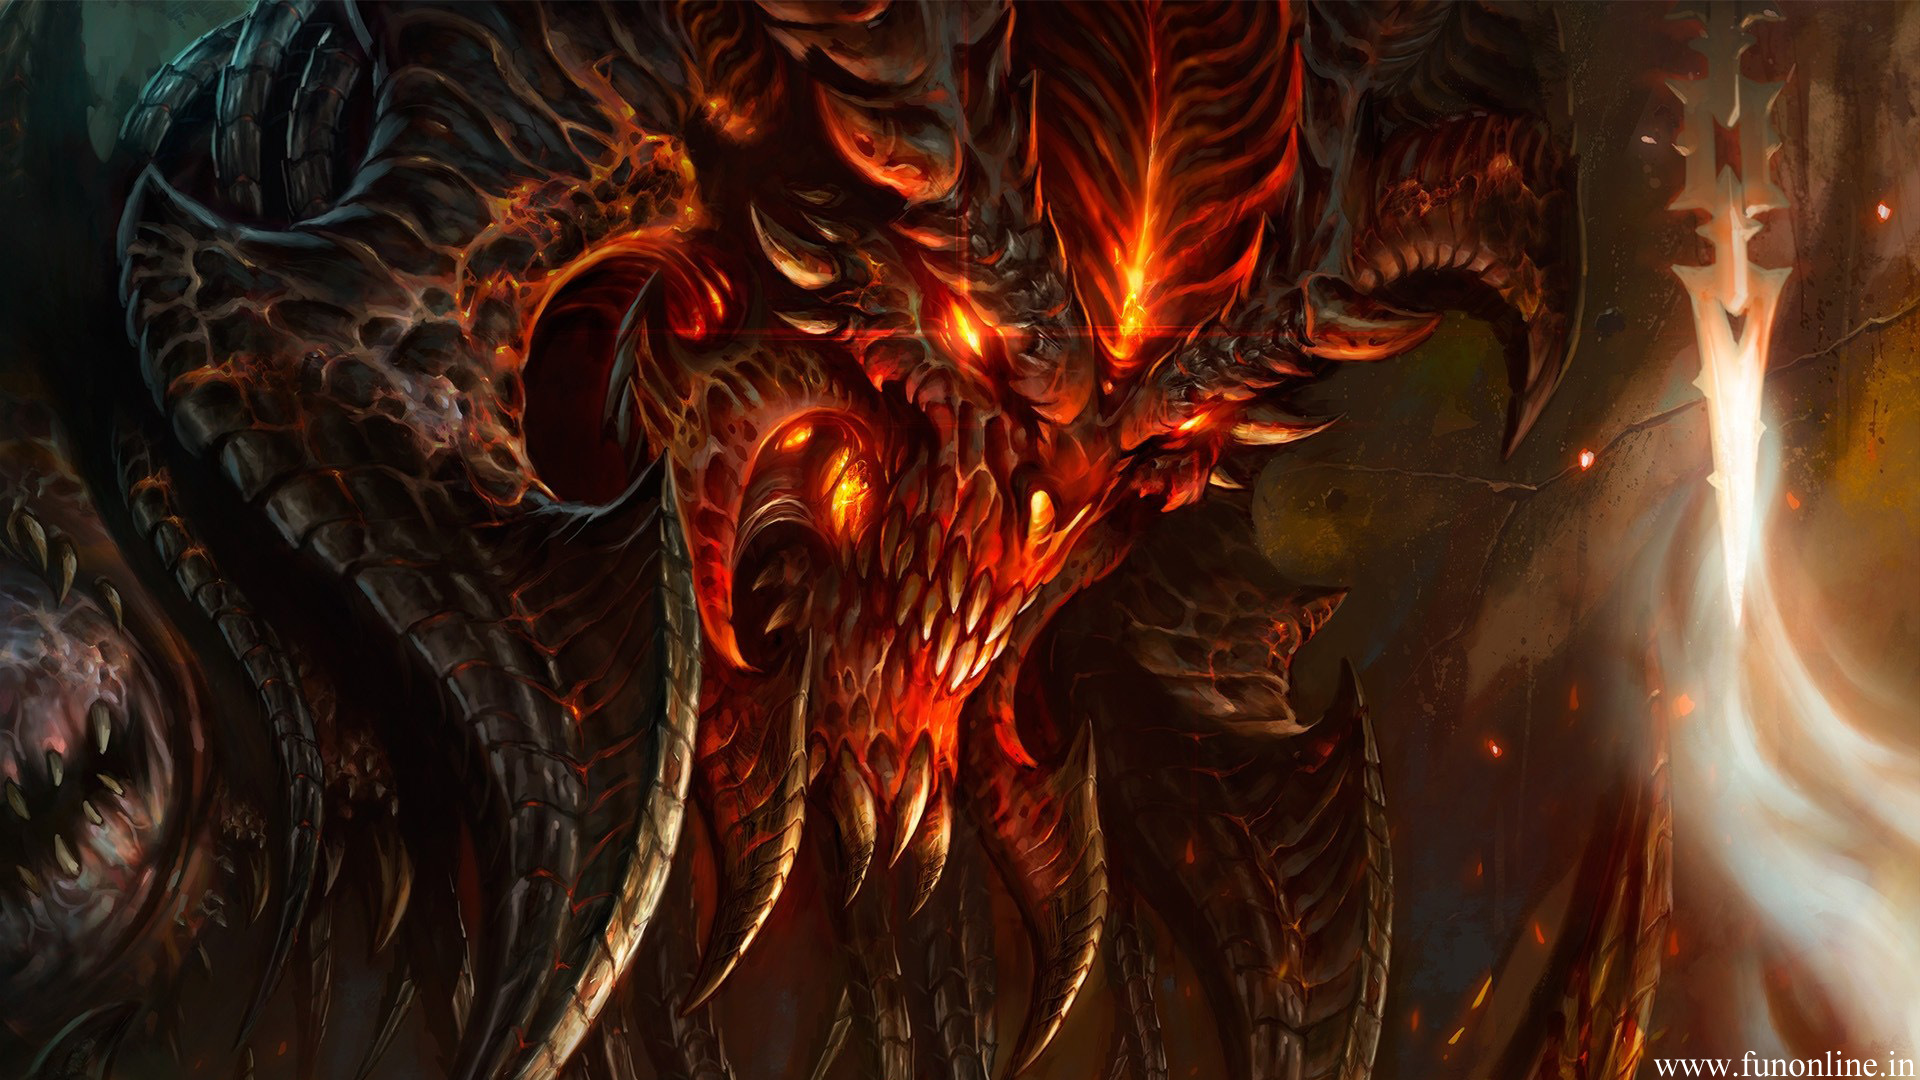 Evil demon in diablo game wallpaper